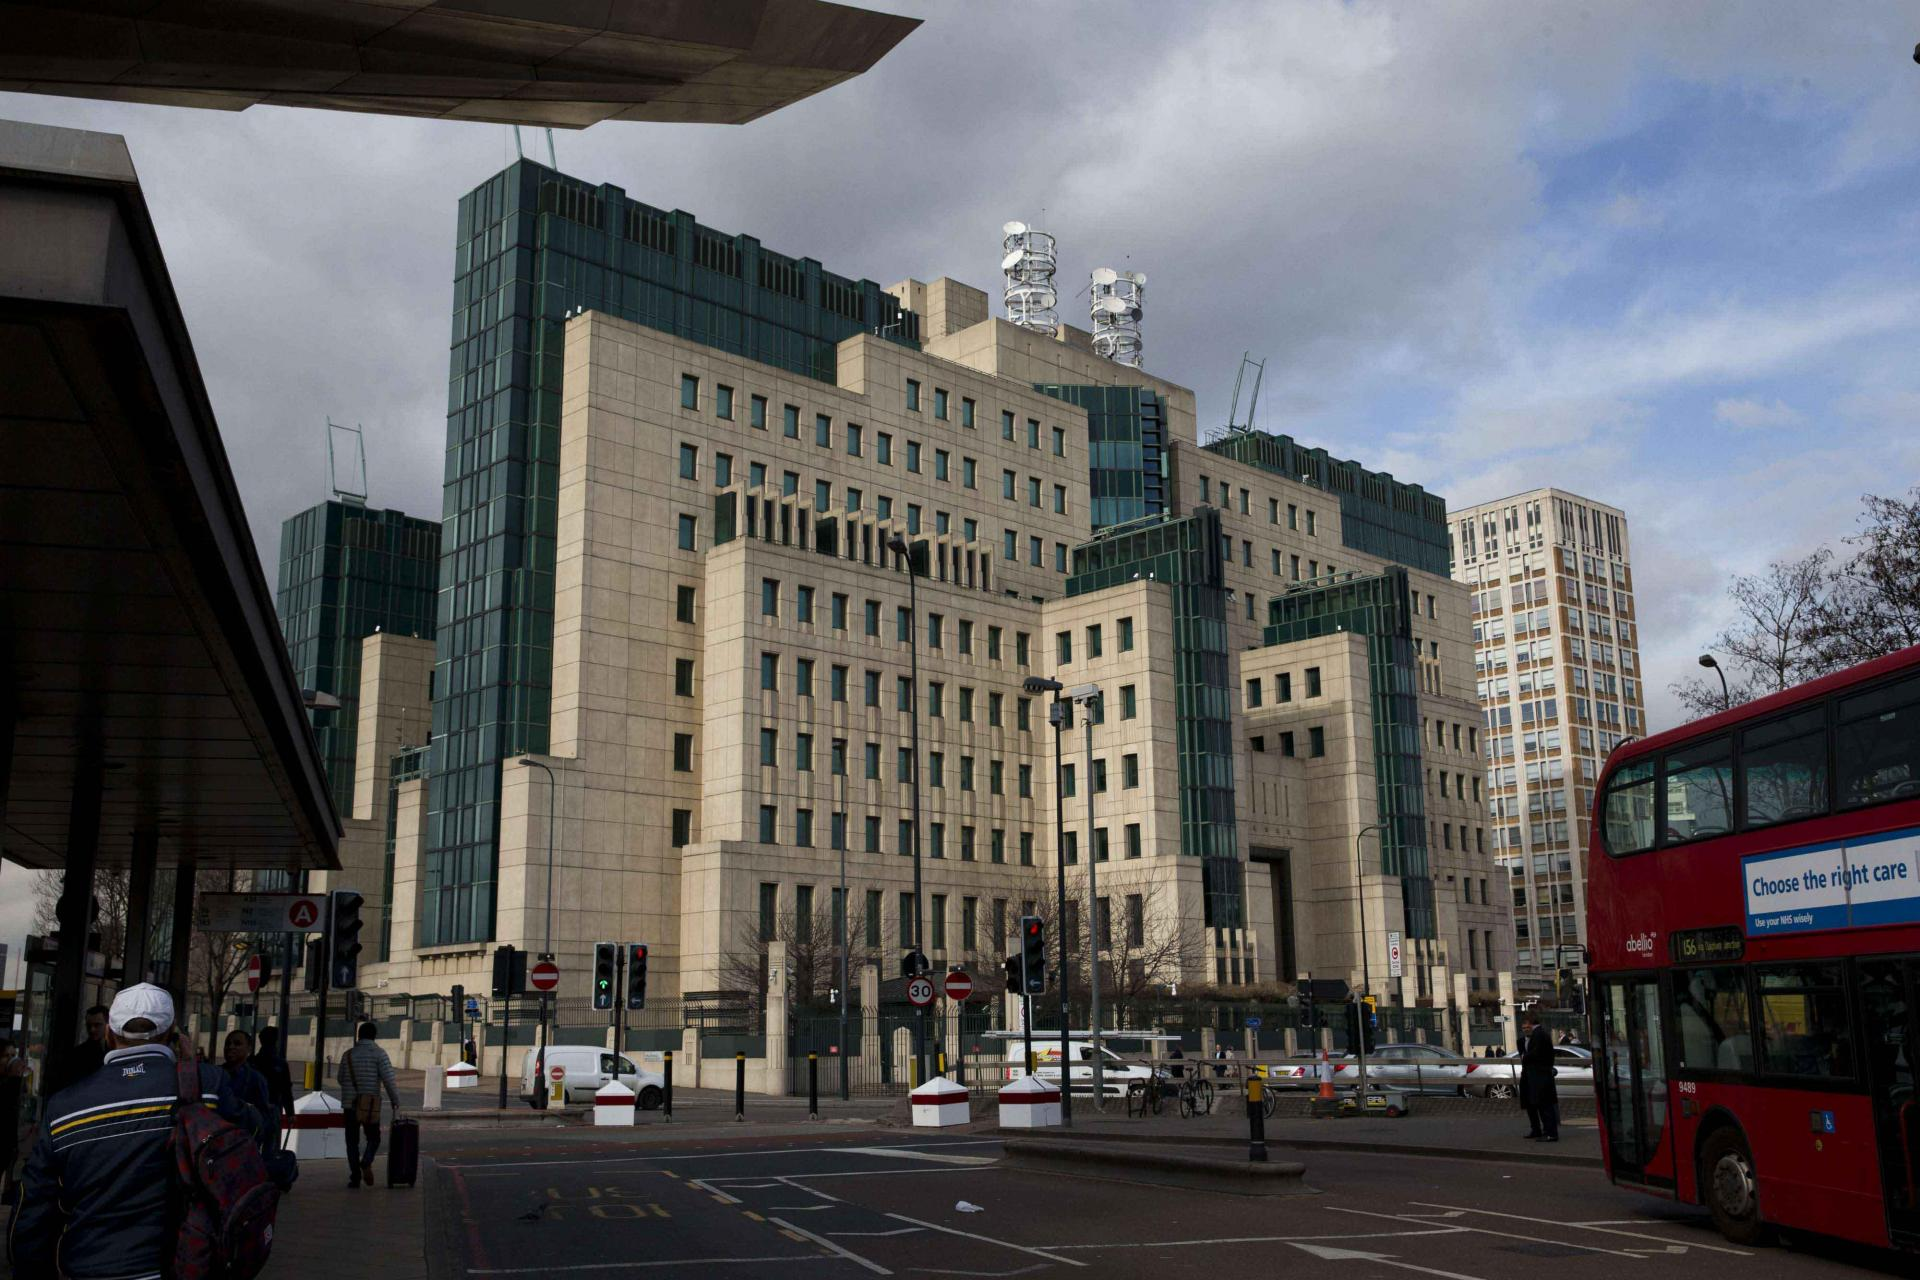 A general view showing the MI6 building in London